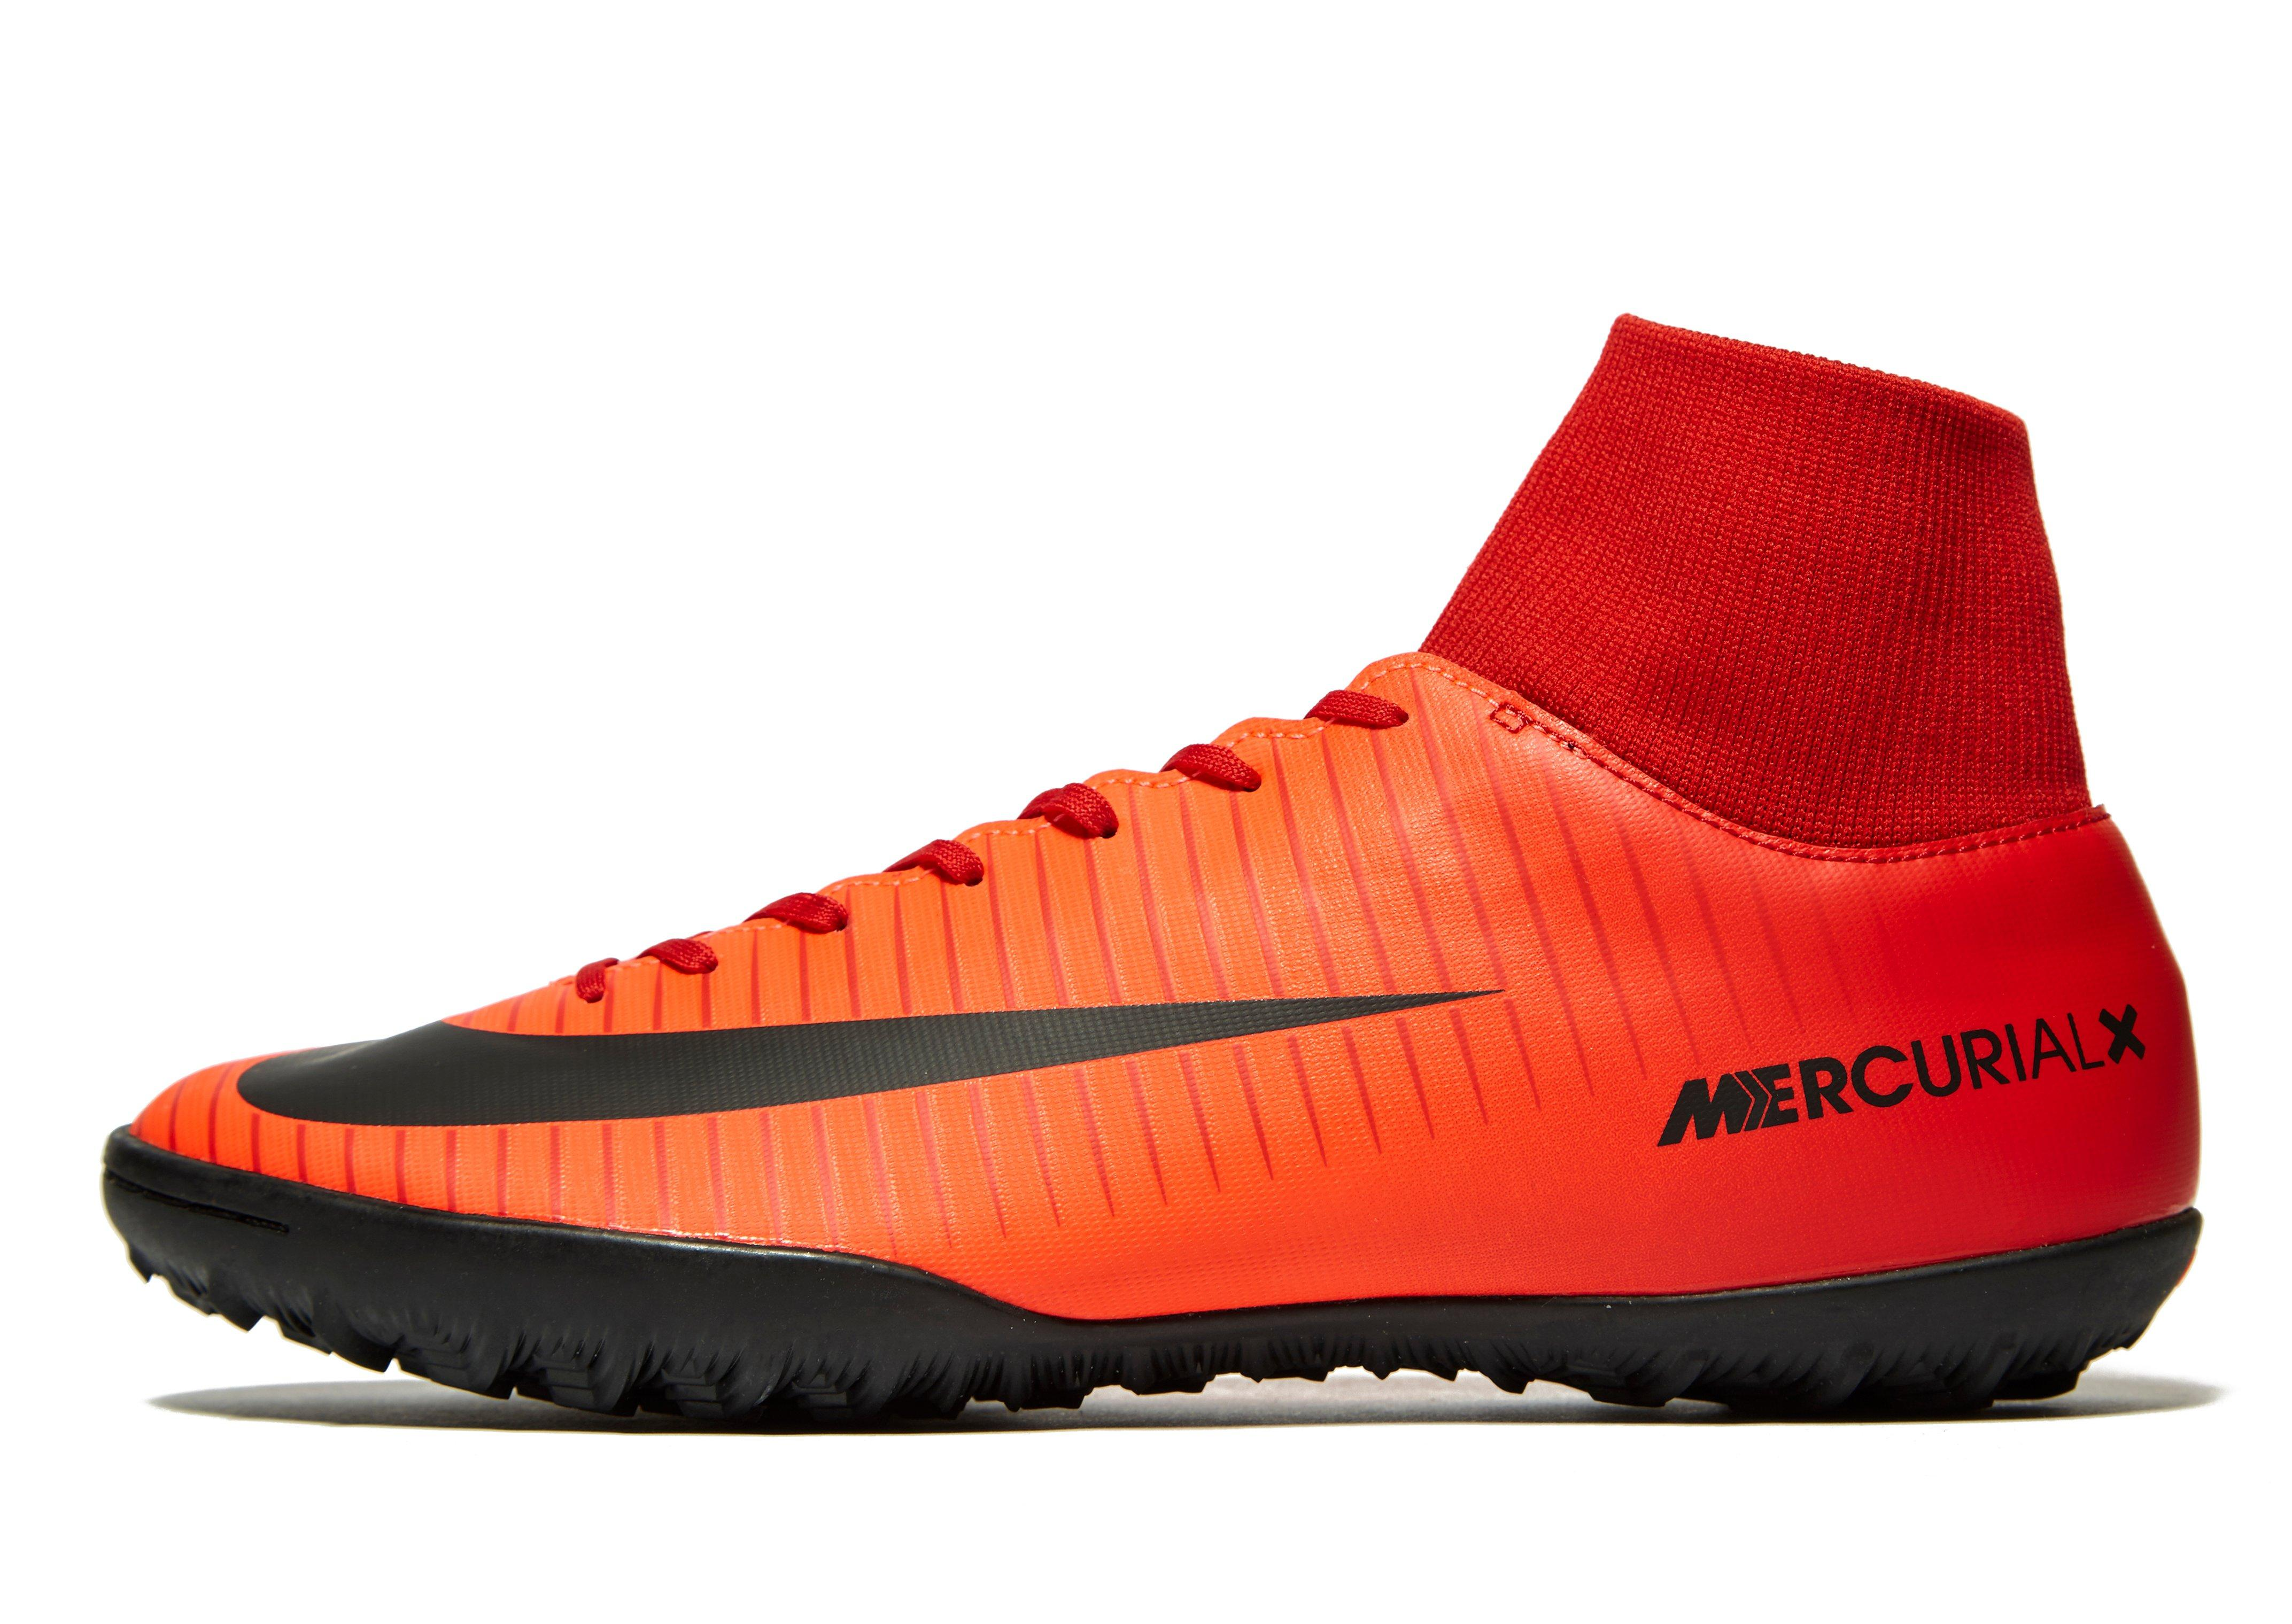 Nike Fire and Ice Mercurial Veloce Dynamic Fit TF